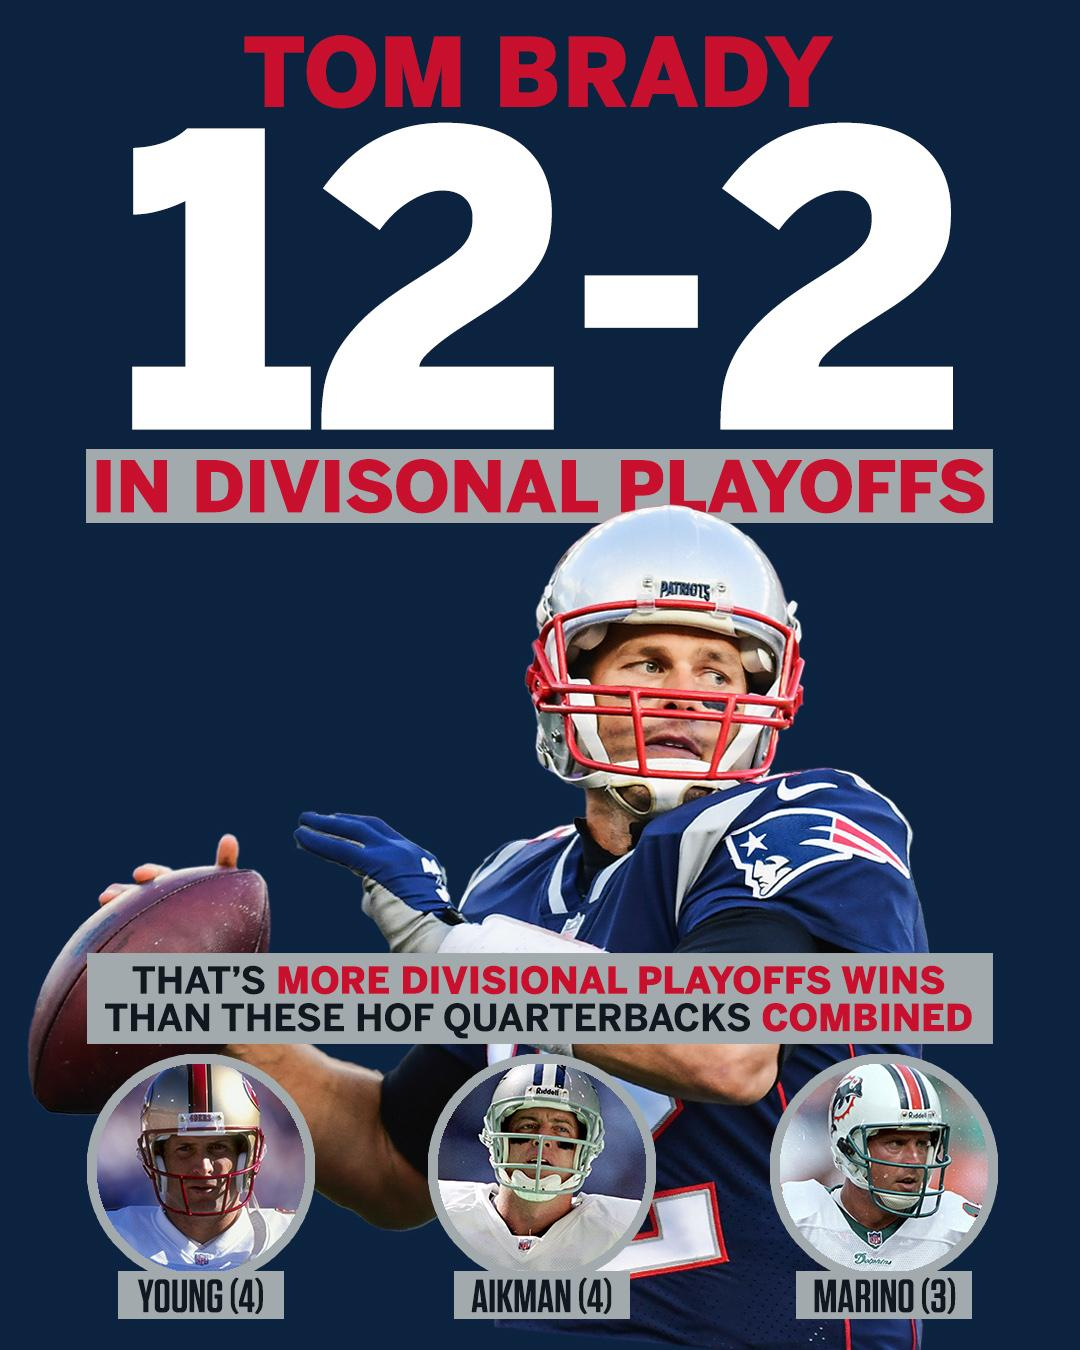 Tom Brady is dominant in the divisional playoffs. https://t.co/wvfS3K68Da